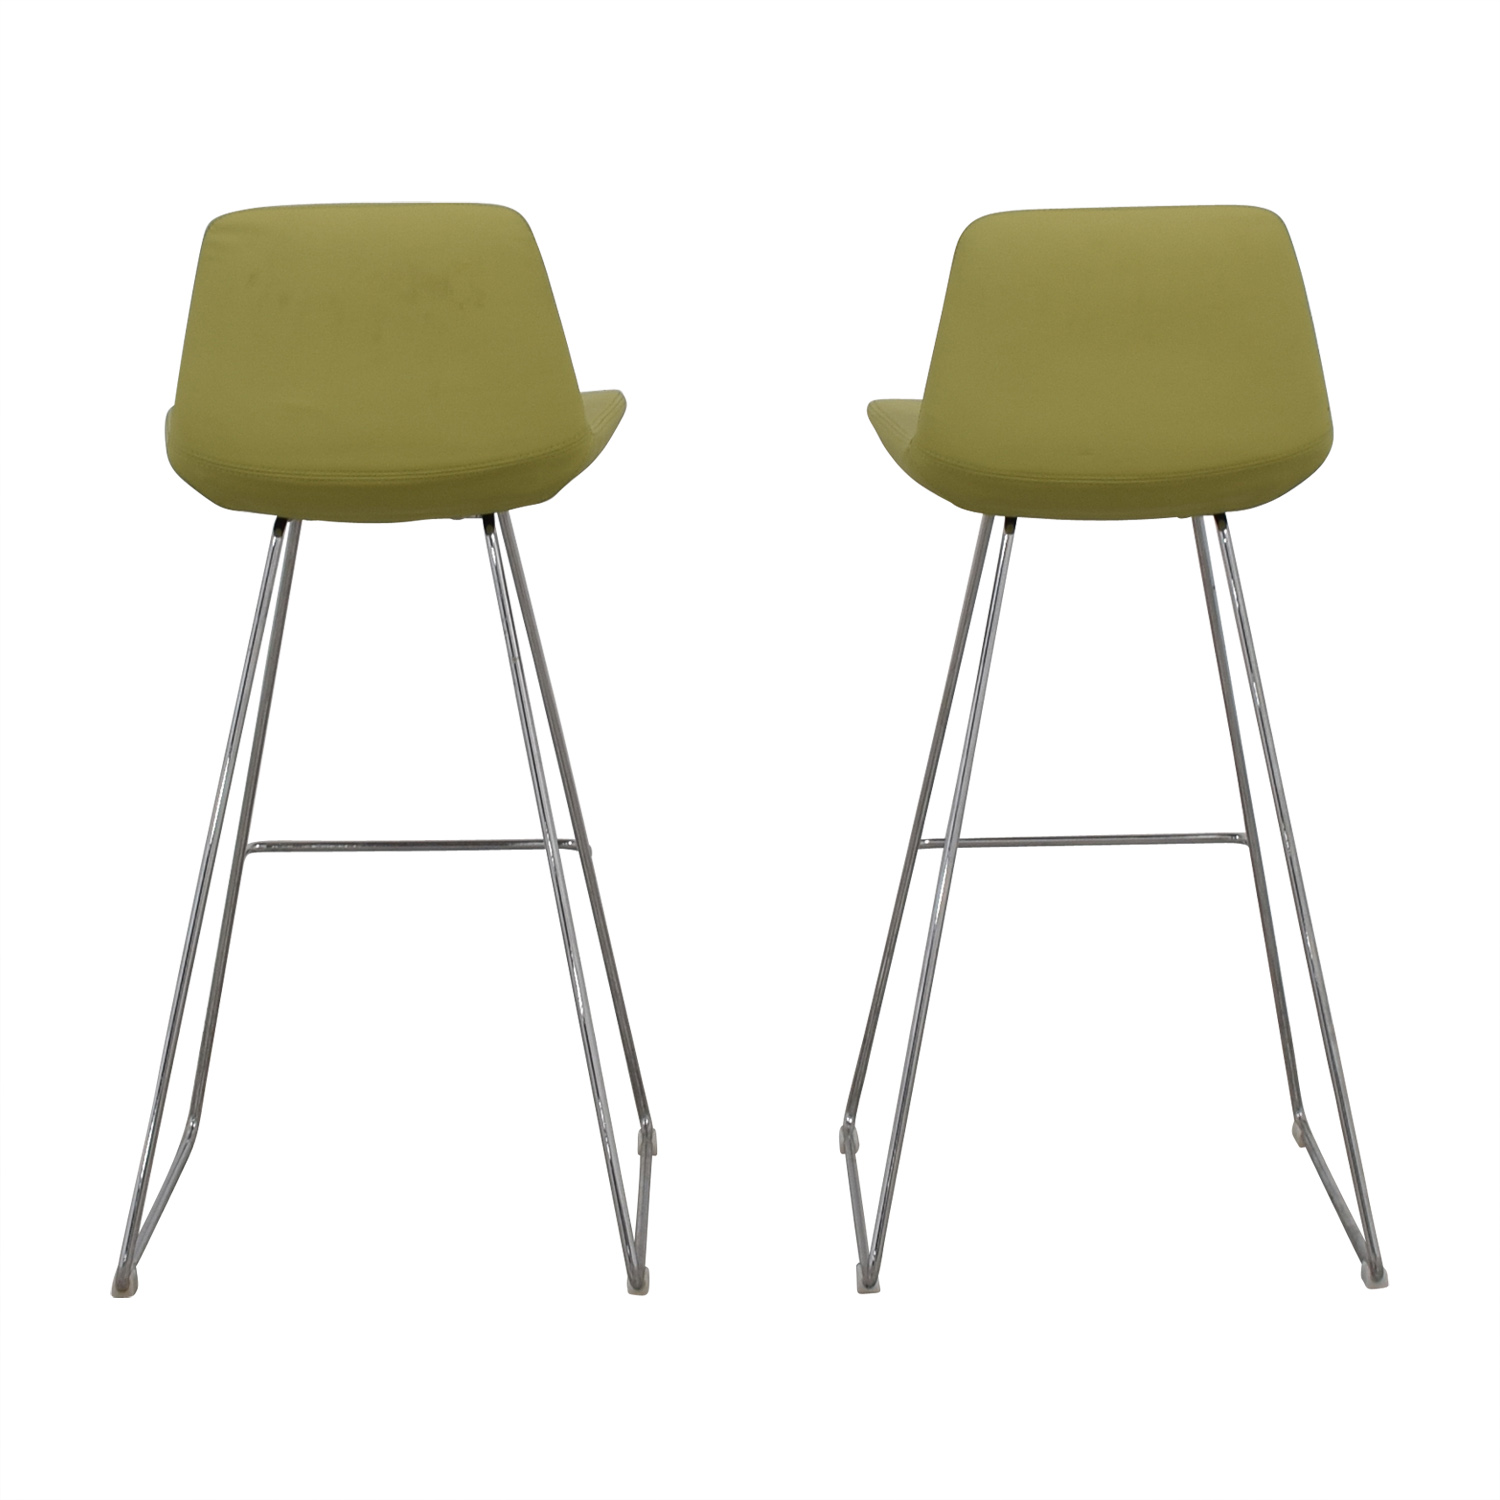 Design Within Reach Design Within Reach Lime Leather Bar Stools dimensions